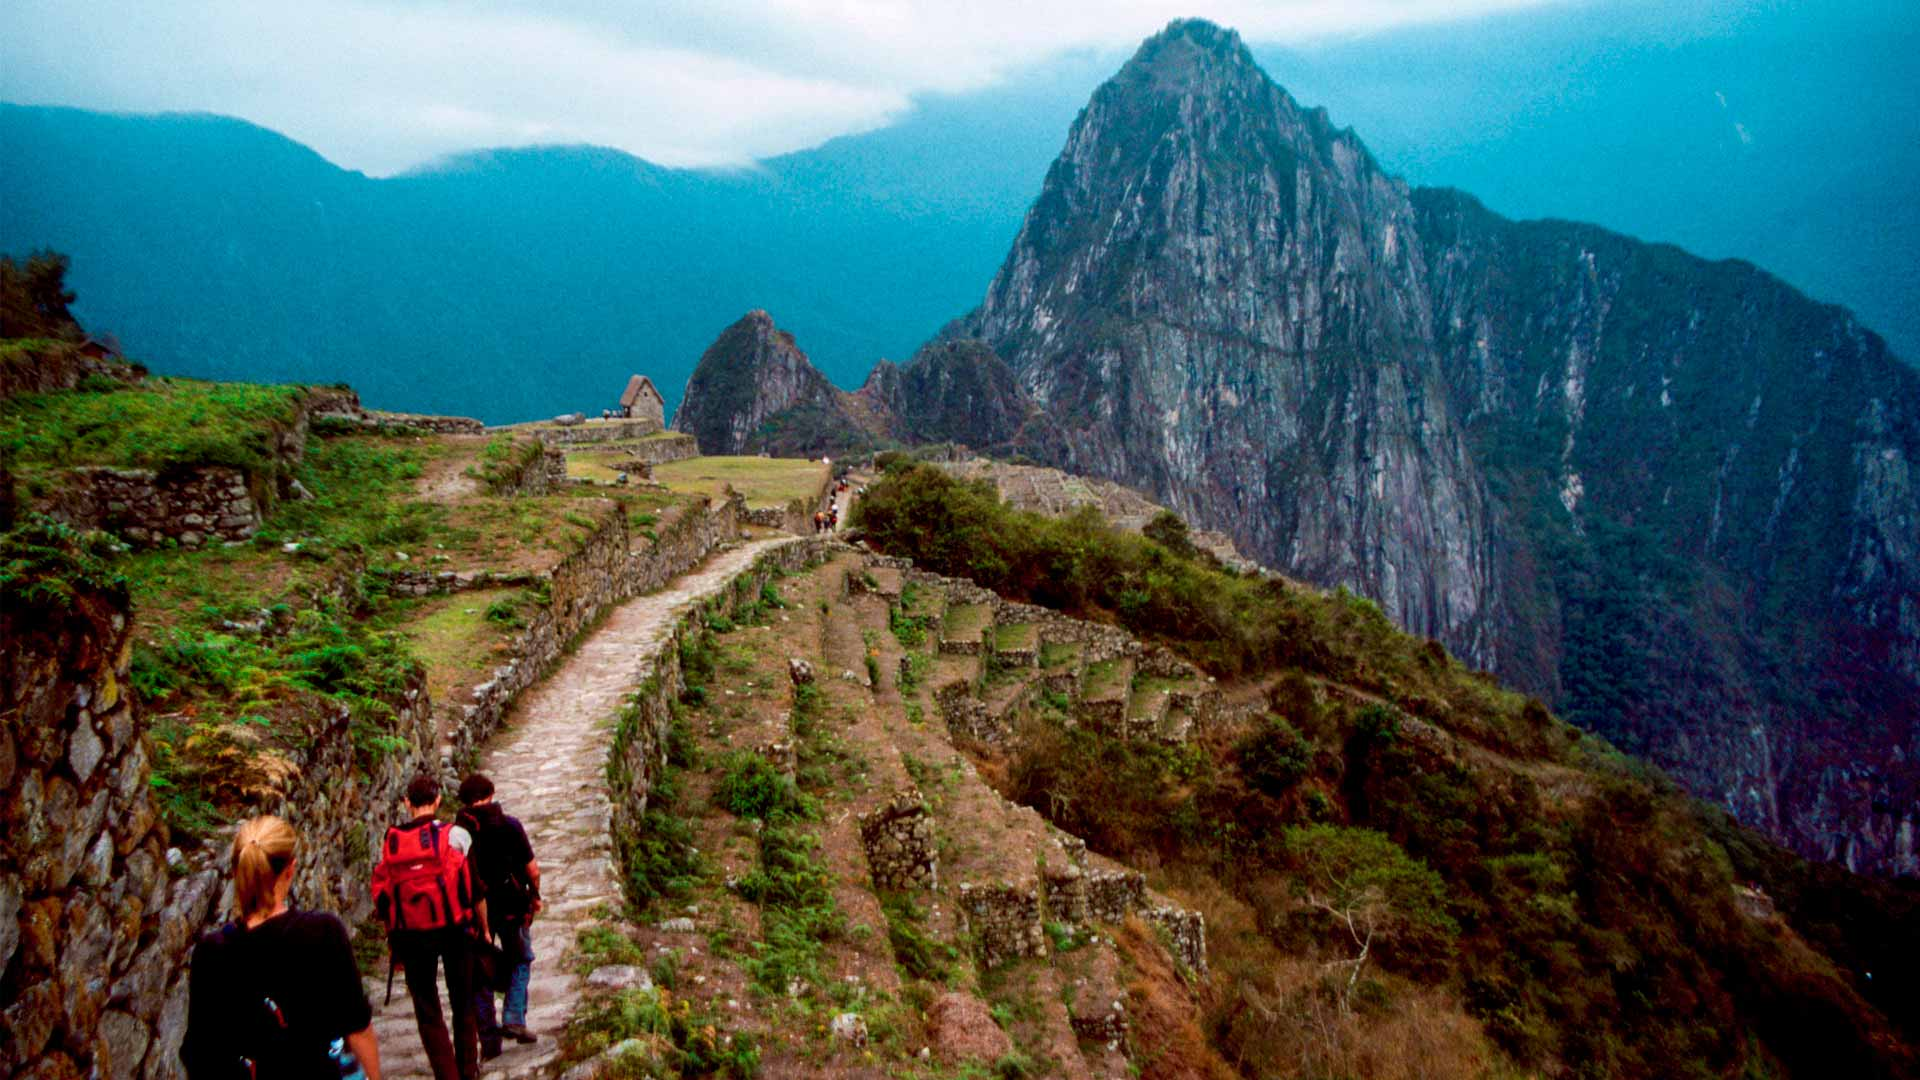 Panoramic view of tourists arriving at Machu Picchu by the classic Inca trail